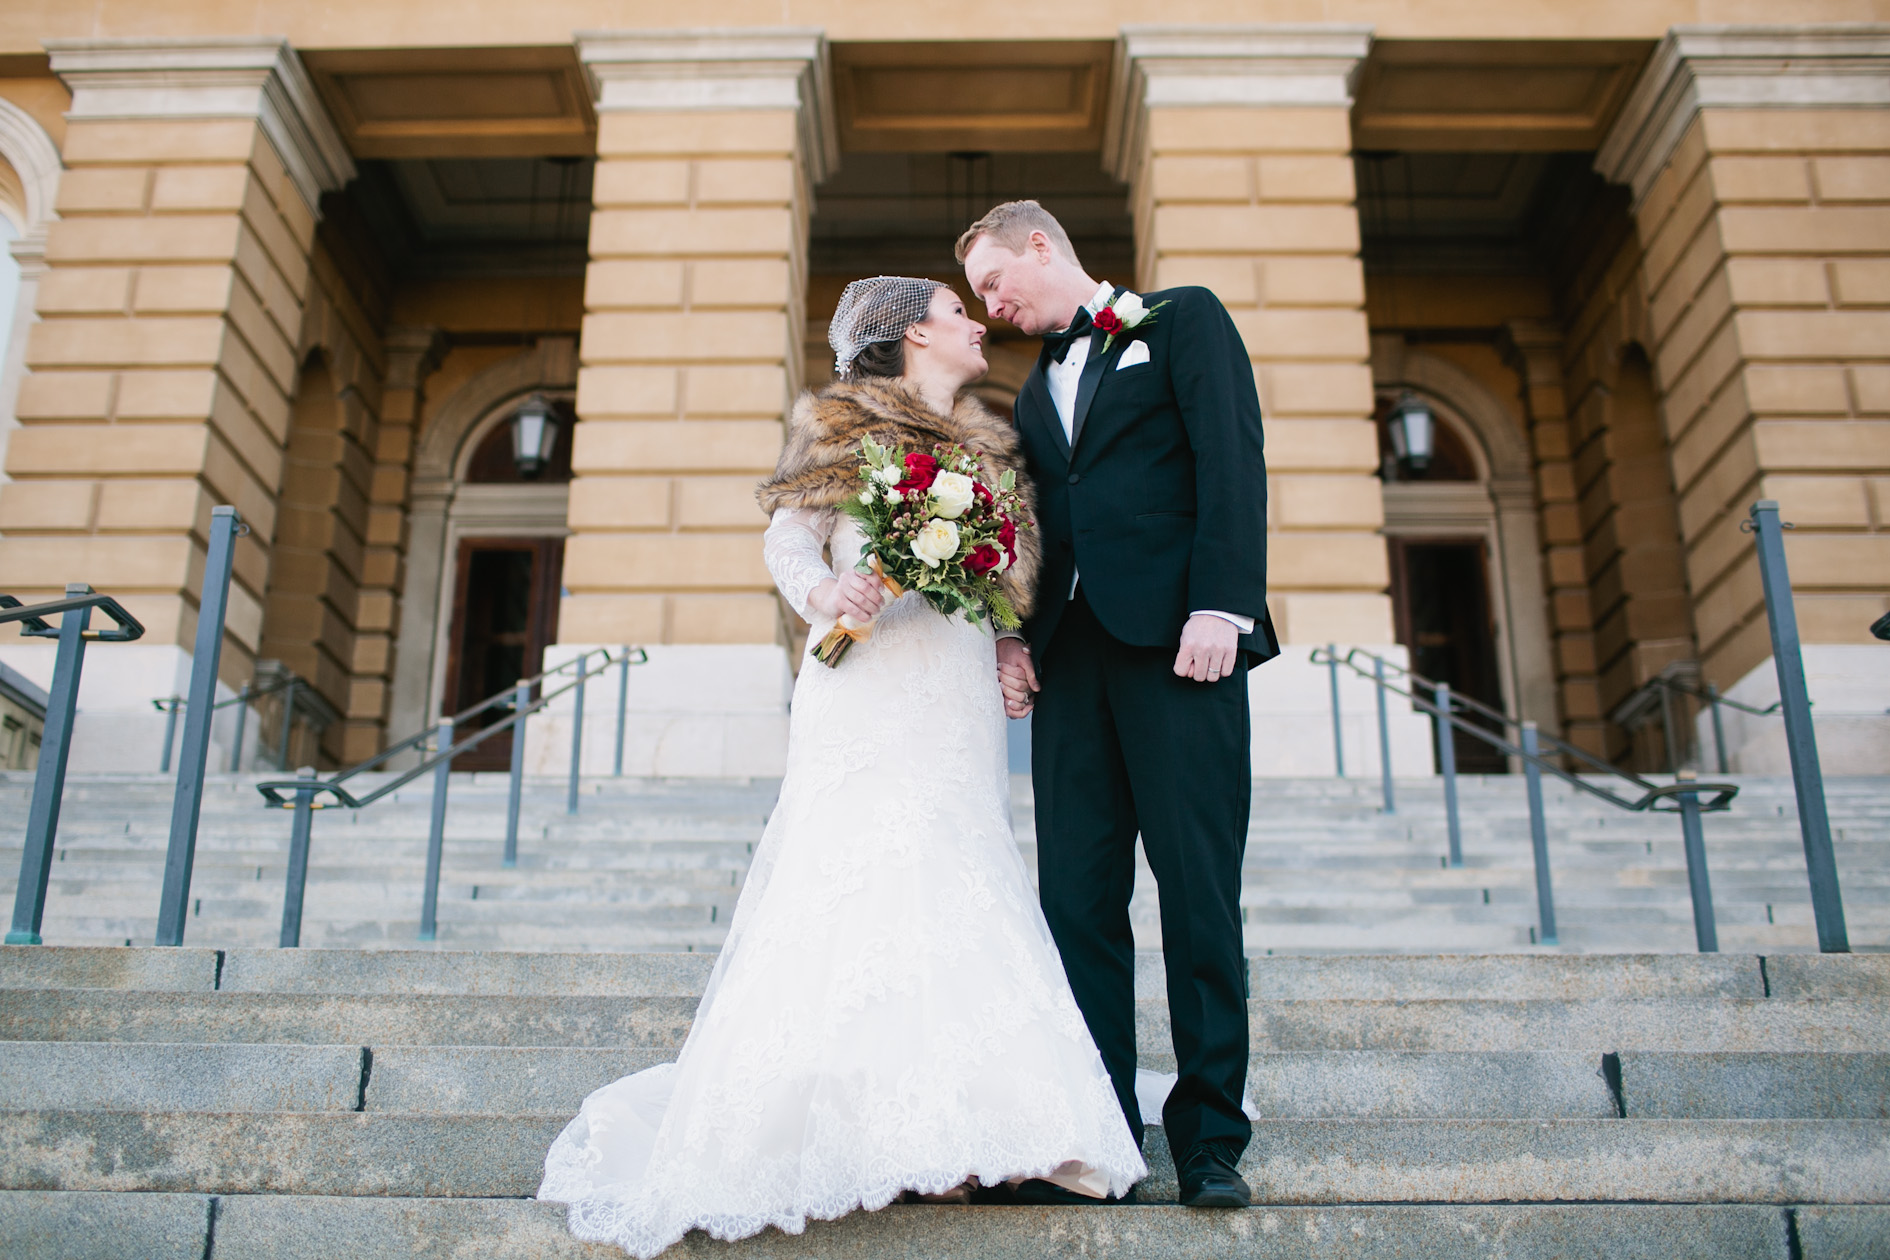 wedding photos at the Iowa State Capital building winter wedding